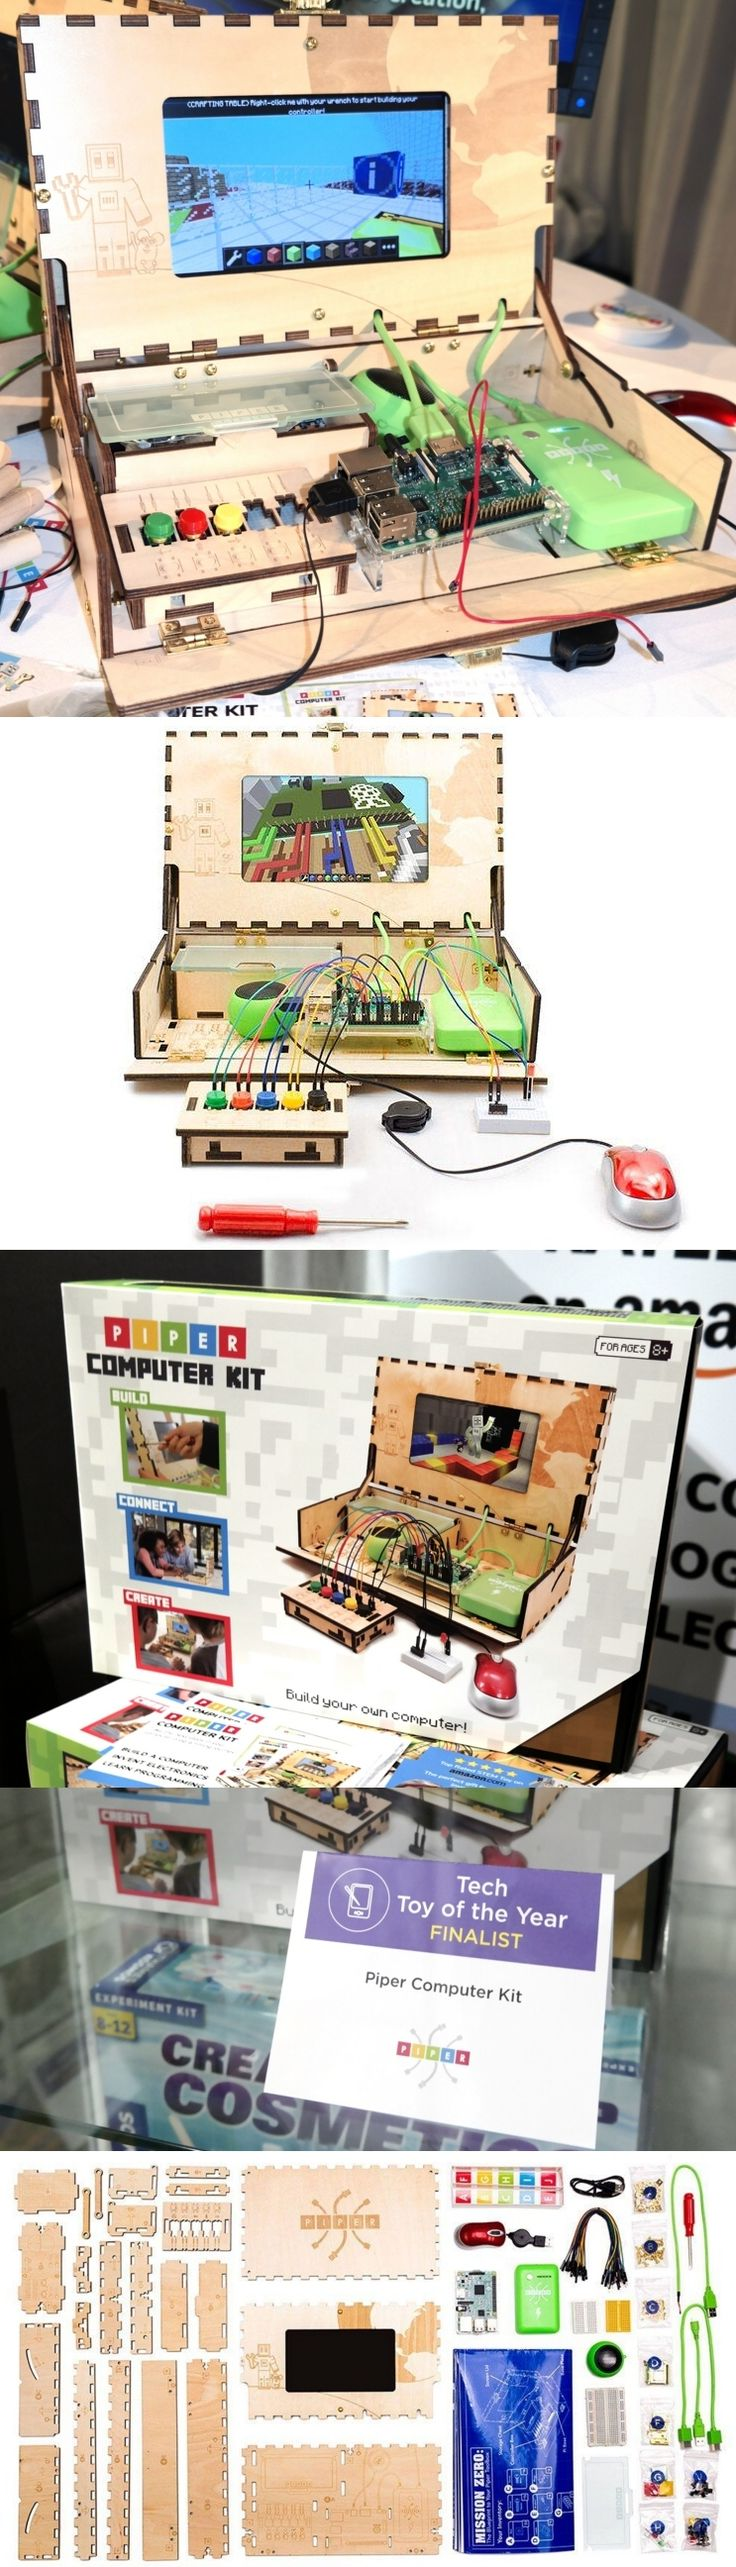 Not only does the Piper Computer Kit teach kids coding and other STEM skills as they build a functional Raspberry Pi-based computer, but the wooden case is quite the conversation piece. The $239 kit comes with instructional software which doubles as a challenging game and all necessary parts, including a 7-inch color LCD. The Piper Computer Kit is a Toy of the Year Finalist in the tech category for the 2018 North American International Toy Fair in New York. CLICK THE PIC for more…